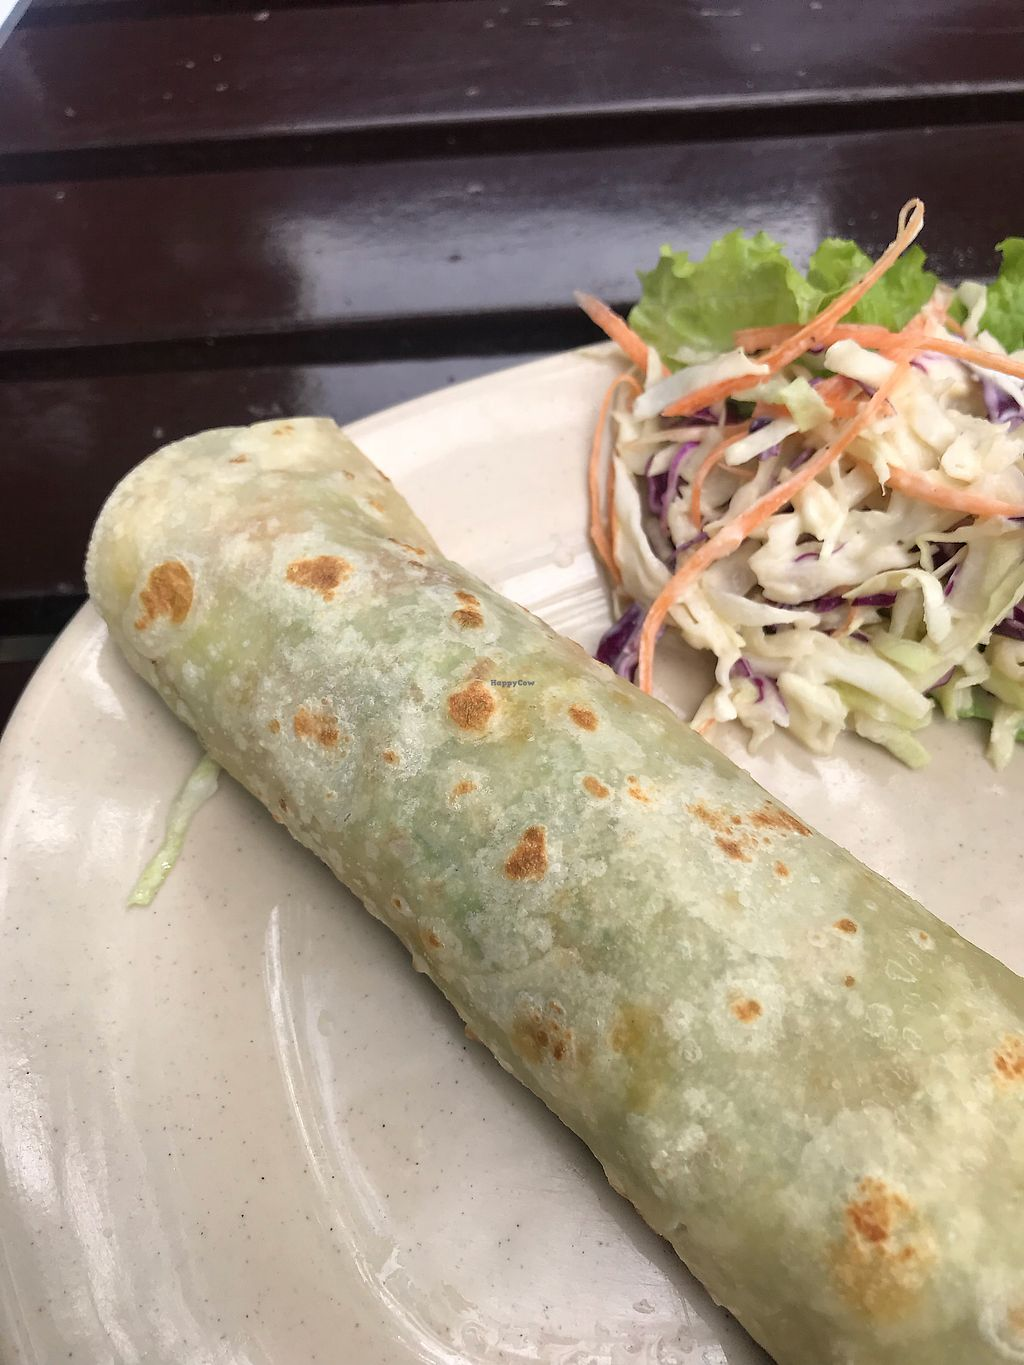 "Photo of Jack's Cat Cafe  by <a href=""/members/profile/vegetariangirl"">vegetariangirl</a> <br/>Vegan Garlic tofu wrap <br/> January 20, 2018  - <a href='/contact/abuse/image/72185/348761'>Report</a>"